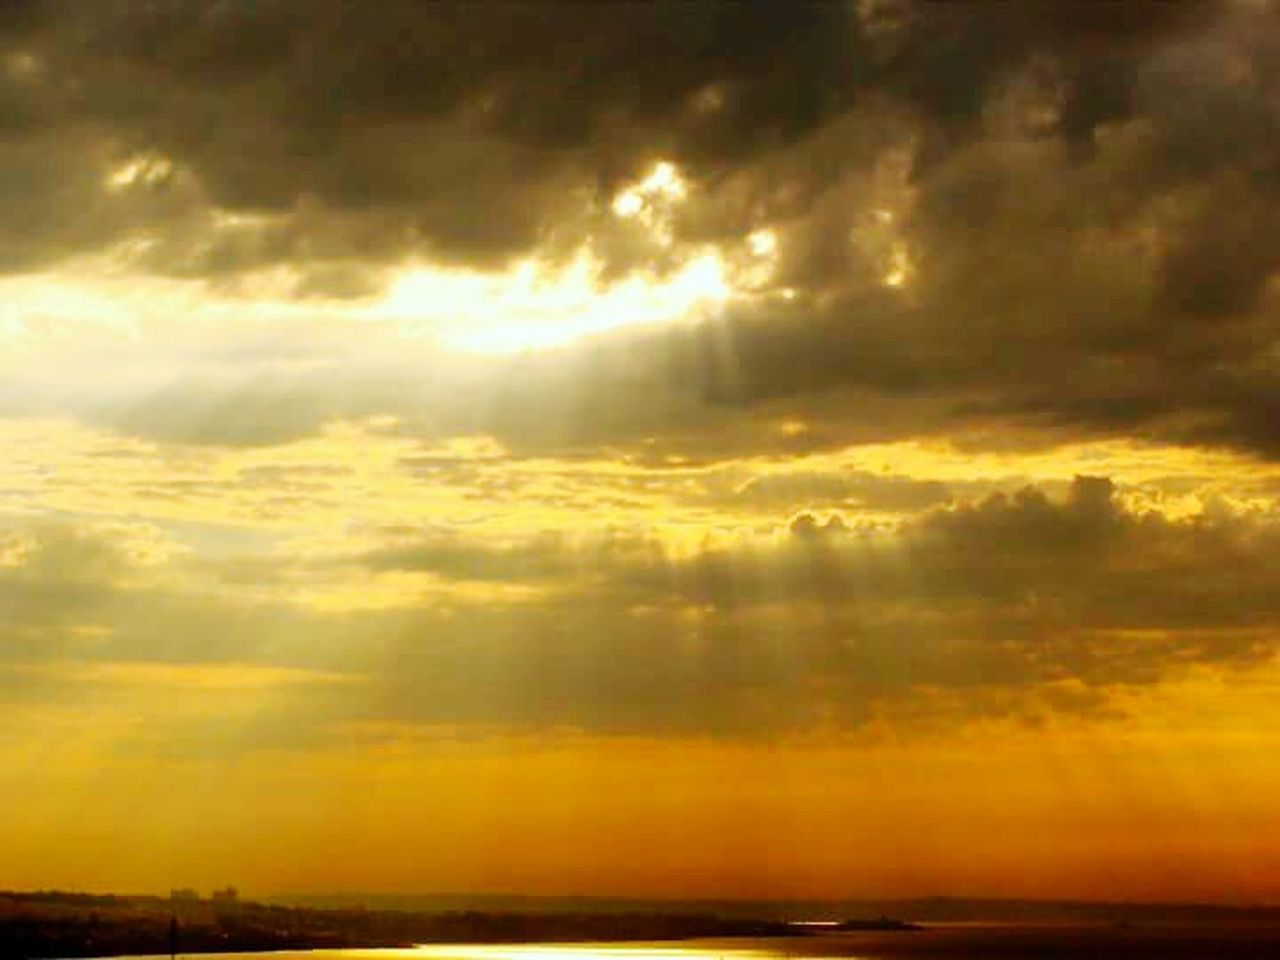 sunset, scenics, nature, sky, dramatic sky, cloud - sky, beauty in nature, sunbeam, yellow, weather, tranquility, tranquil scene, outdoors, no people, storm cloud, day